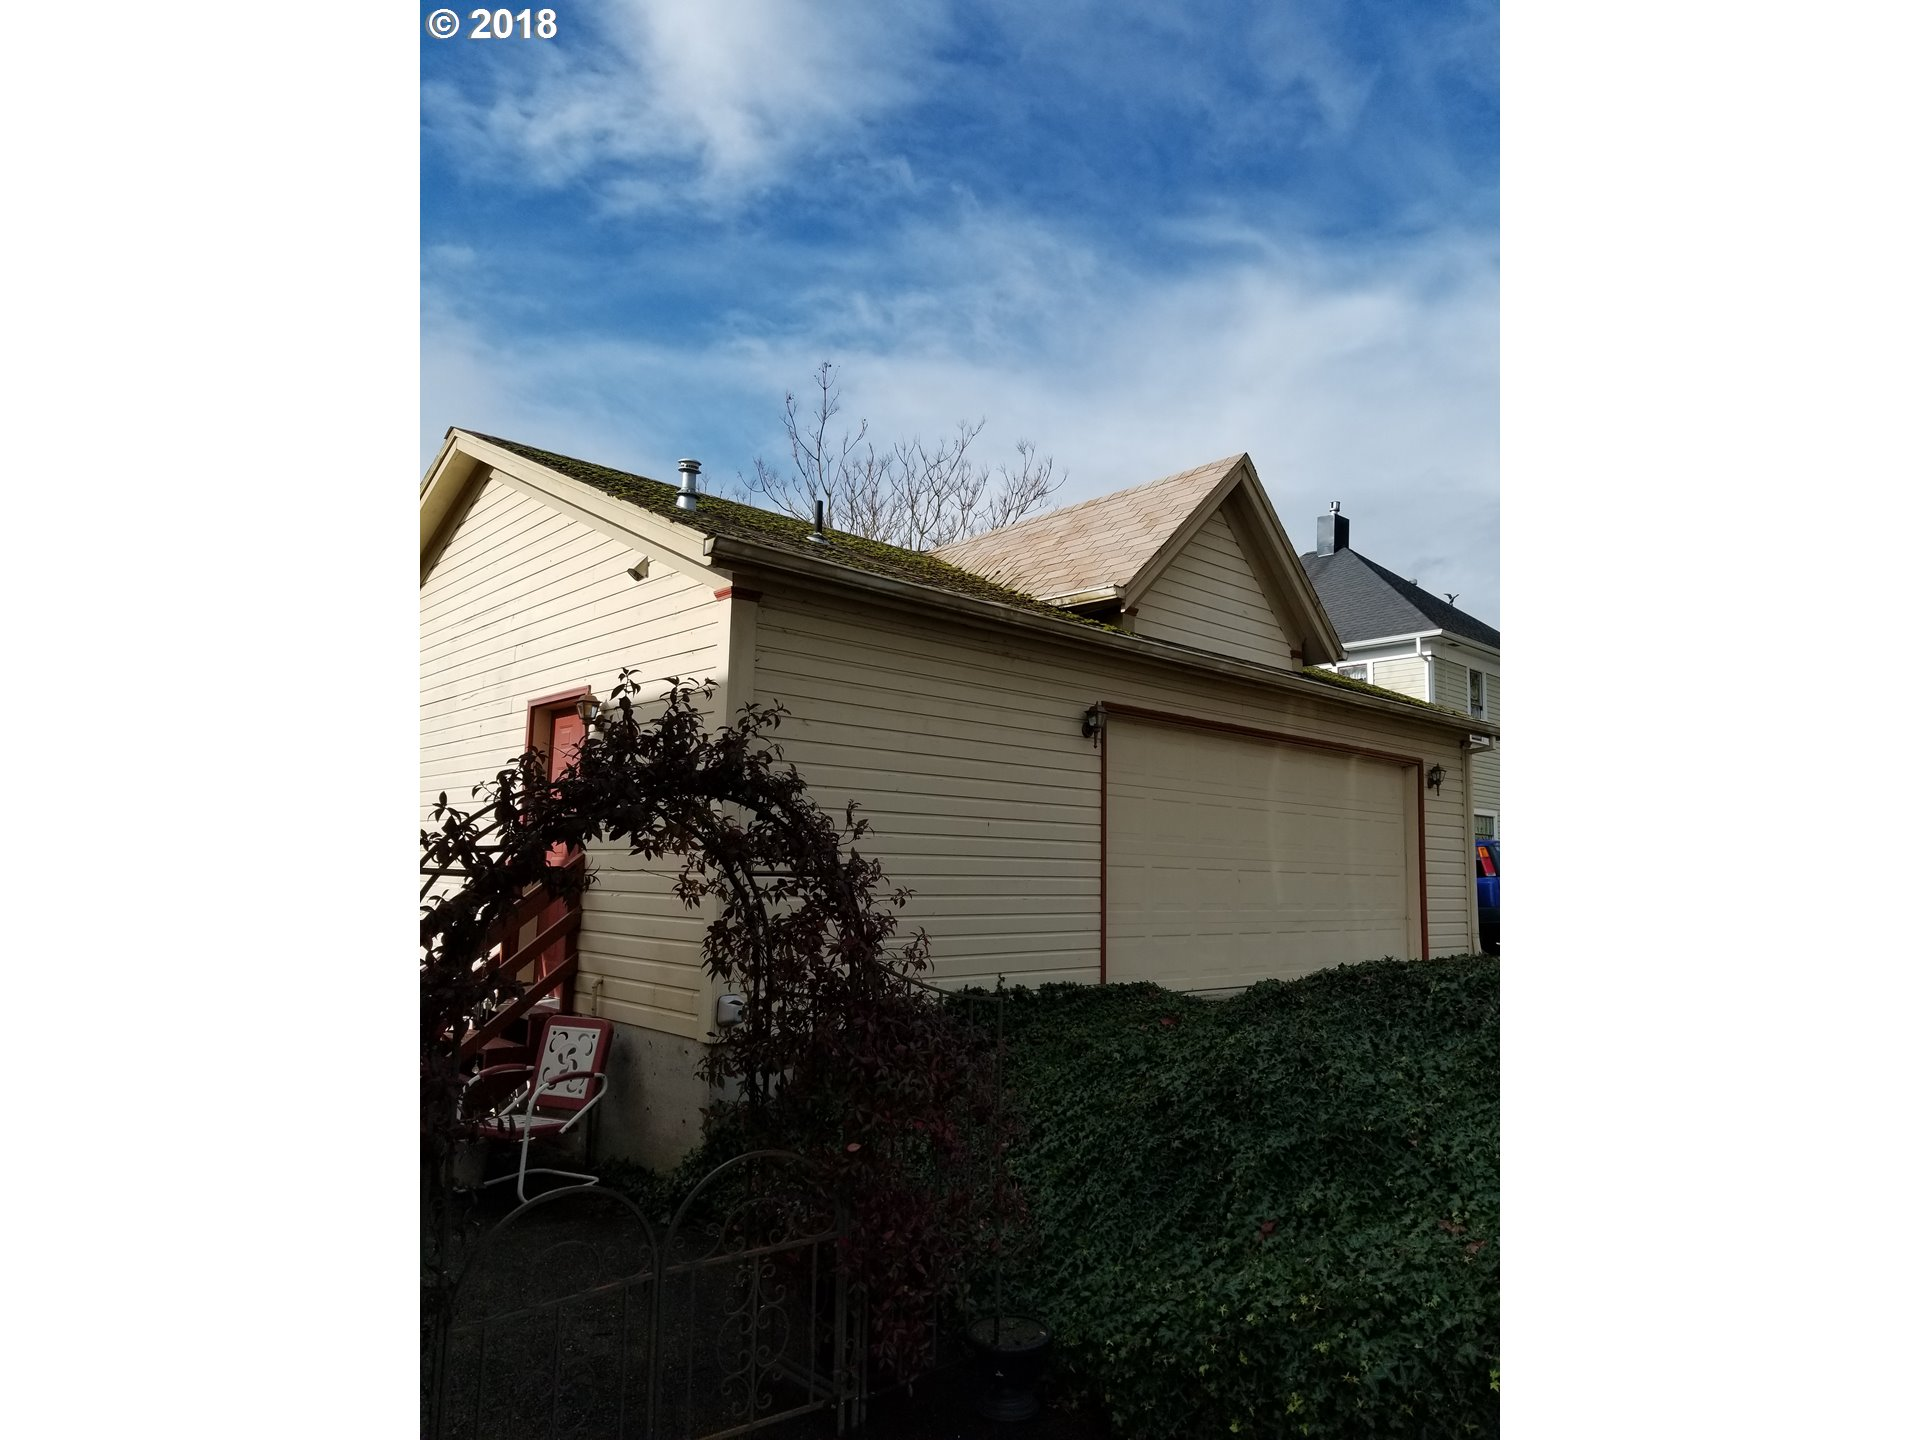 948 sq. ft 2 bedrooms 2 bathrooms  House For Sale,Myrtle Creek, OR